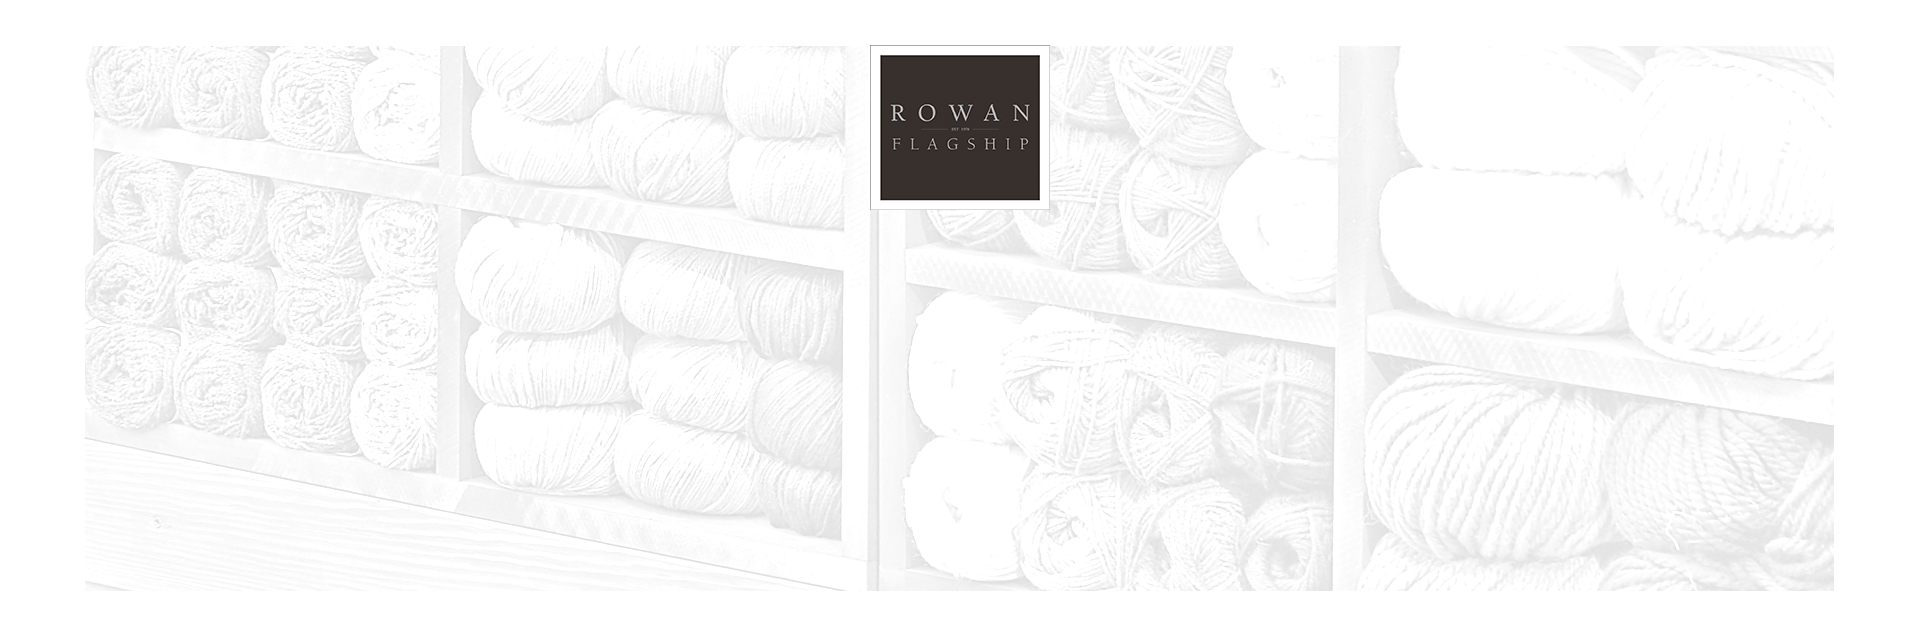 In the lovely market town of Northallerton you can find a knitter's haven in the Natural Knitter Wool shop. As the name suggests the shop carries a fine array of beautiful natural yarns from around the world and has been a Rowan Flagship store for over a year.